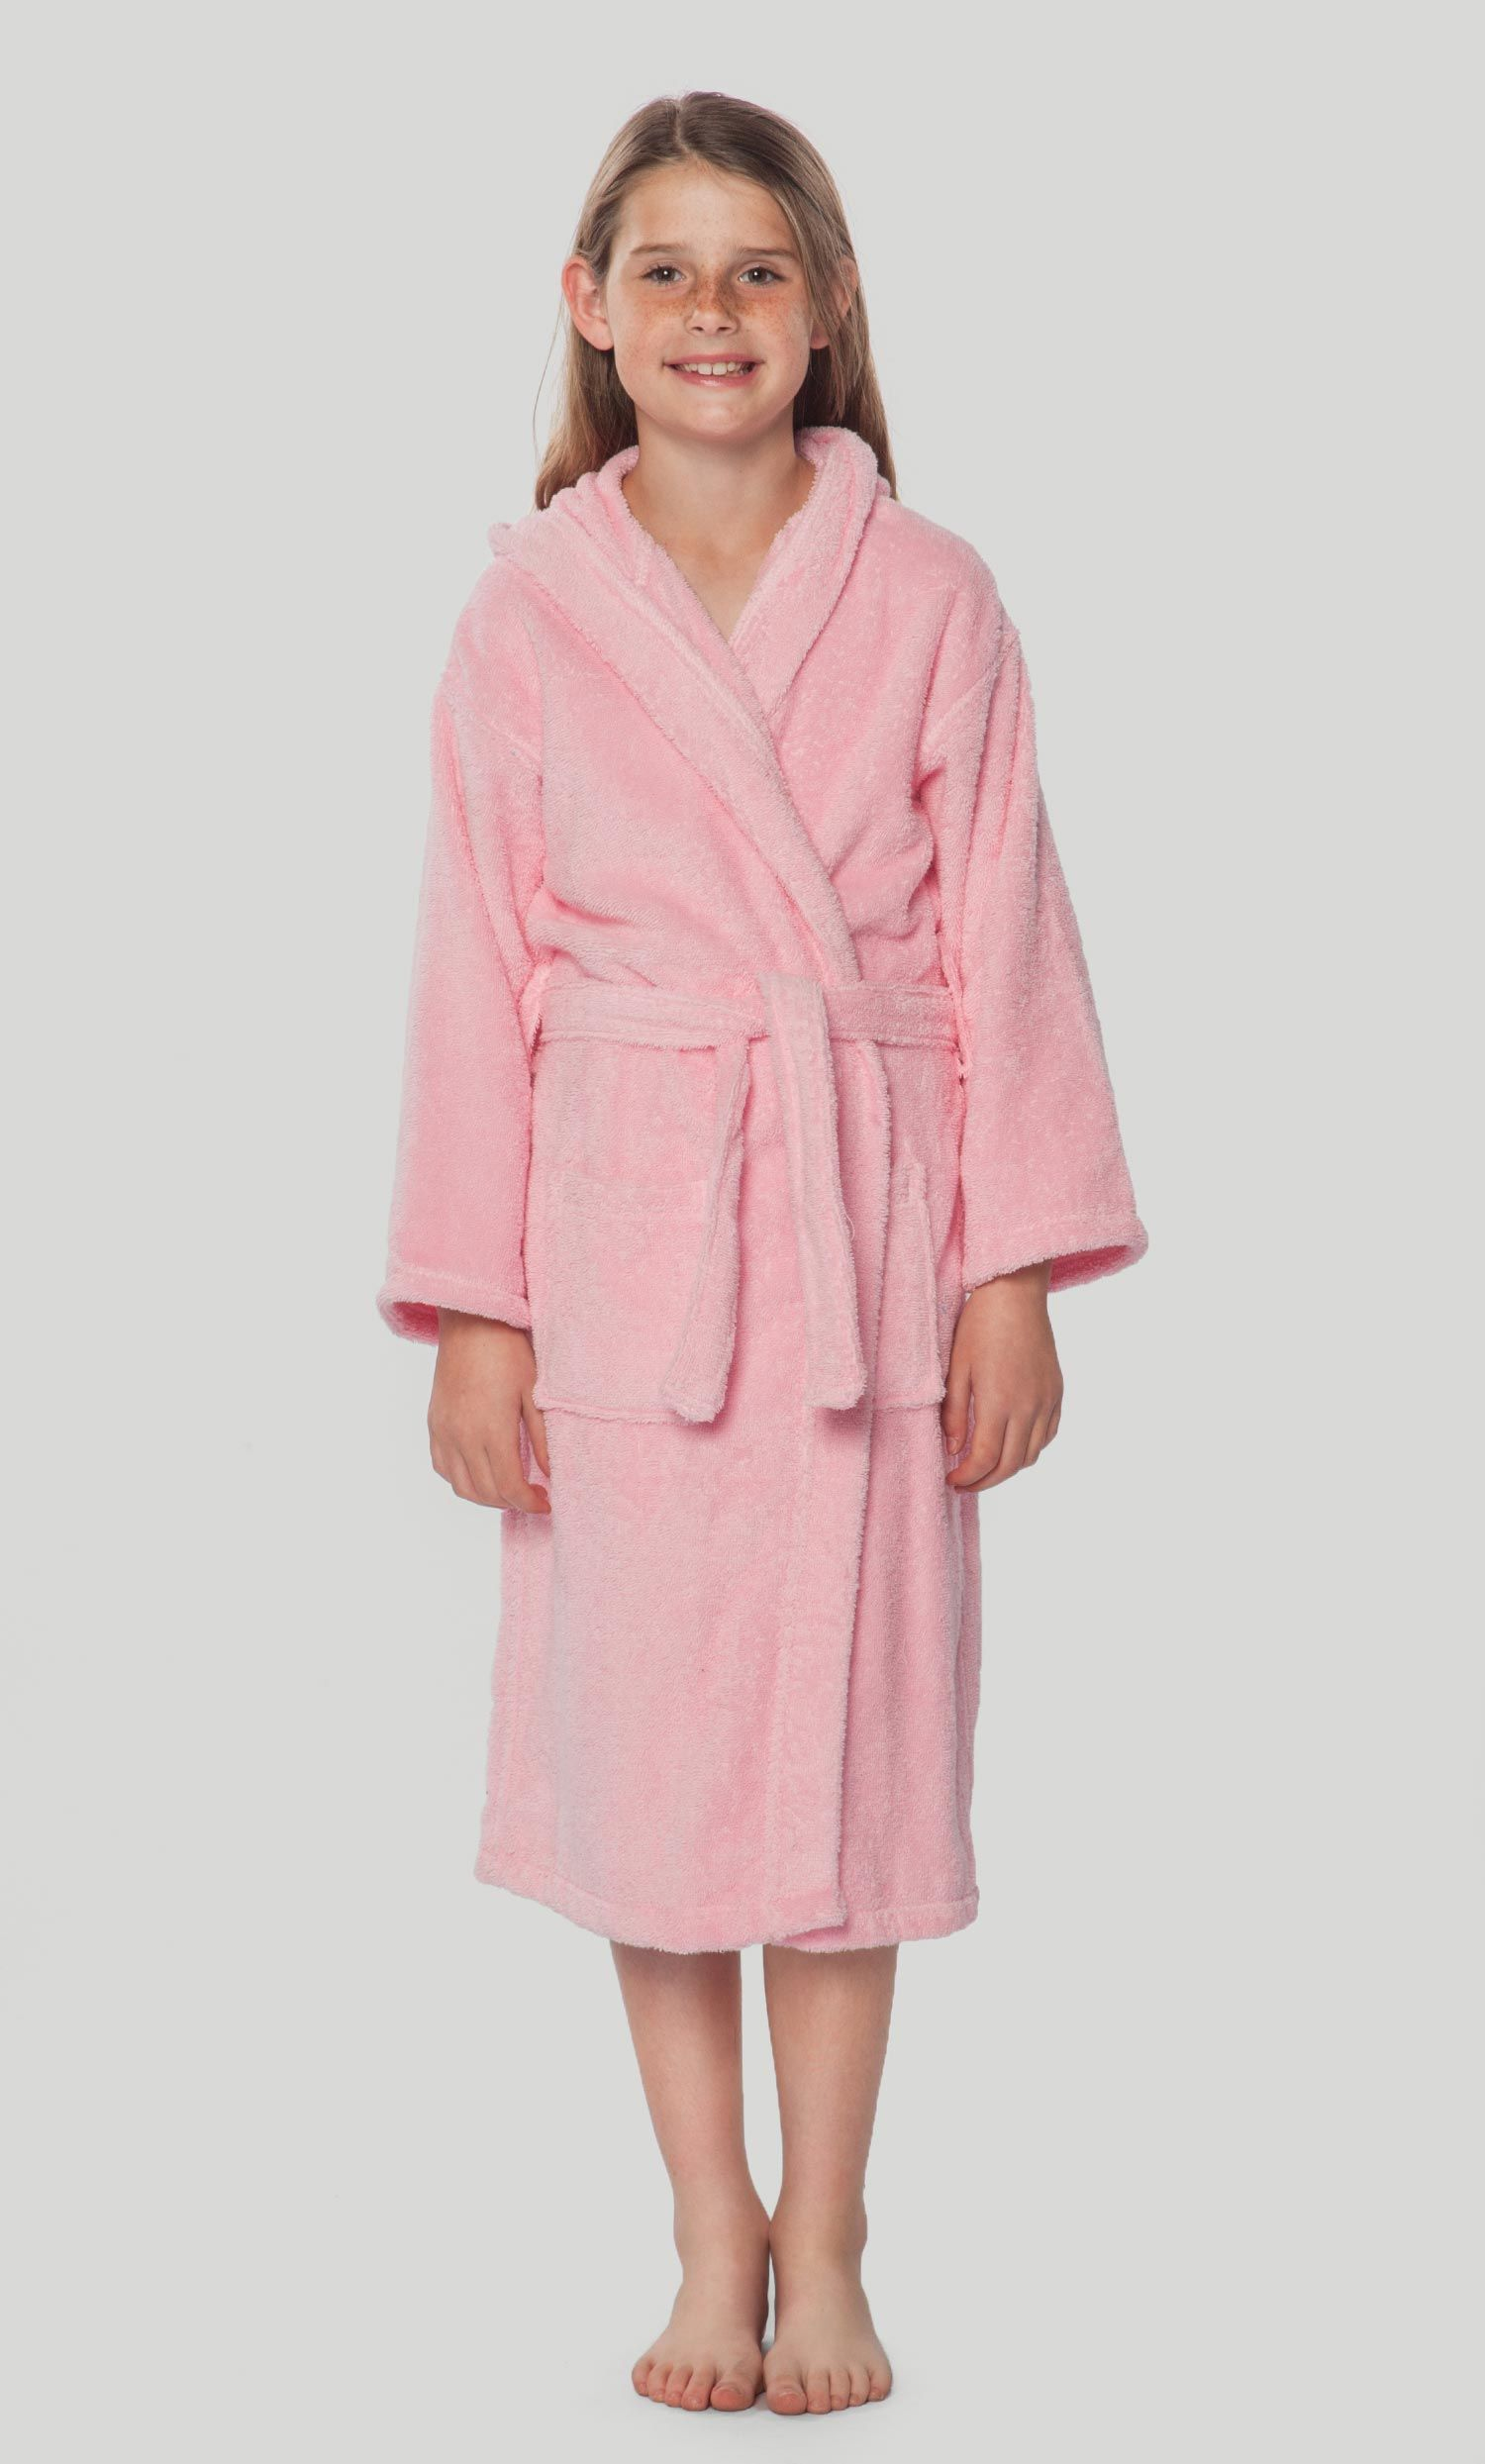 d1f7cd45d1 Kids Bathrobes    Terry Kids Hooded Bathrobes    100% Turkish Cotton Pink Hooded  Terry Kid s Bathrobe - Wholesale bathrobes